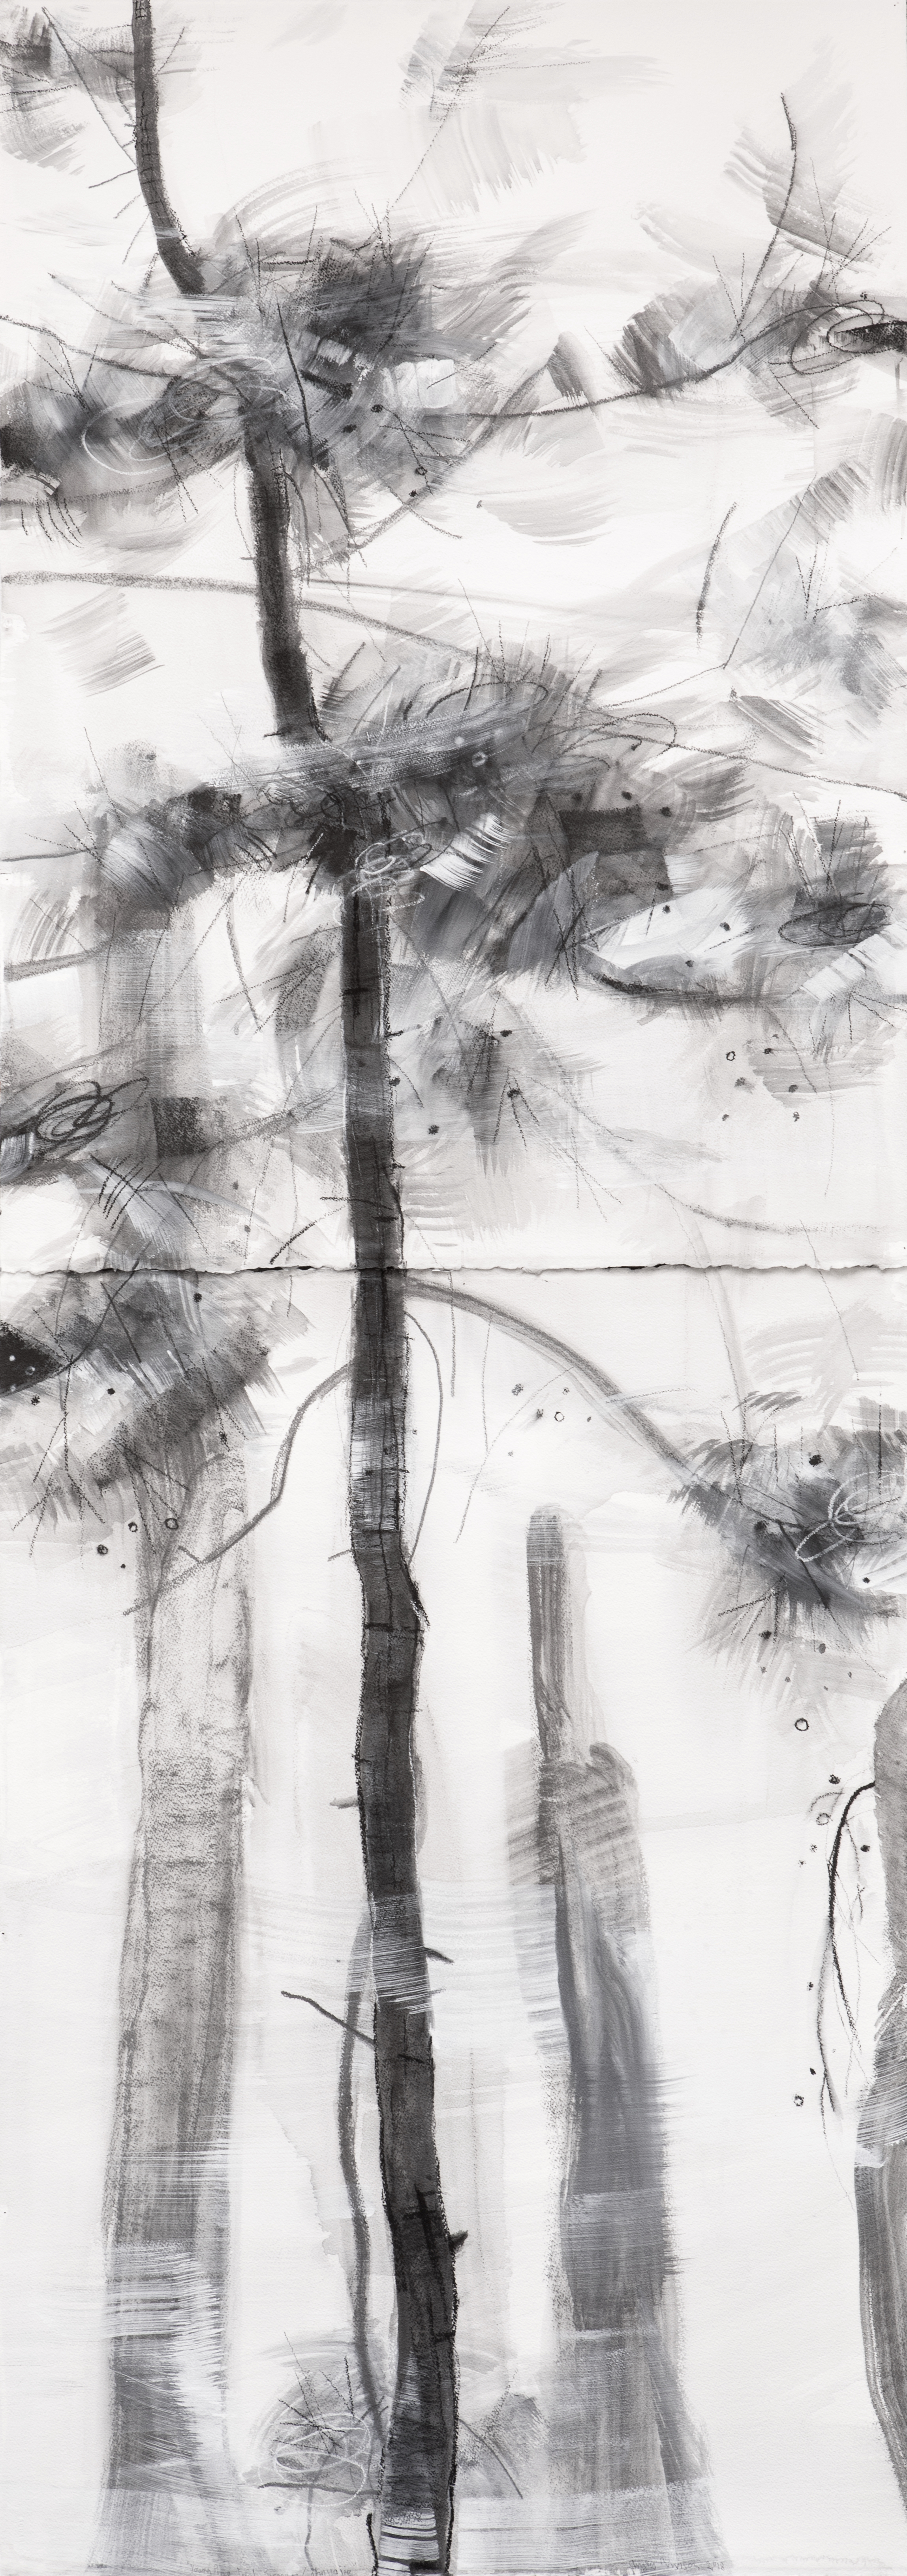 Young Pine, fresh breeze - Zahnjiajie, 2018, White Acrylic, Graphite and Pigment on 640 gsm Arches, 212 x 76cm.jpg